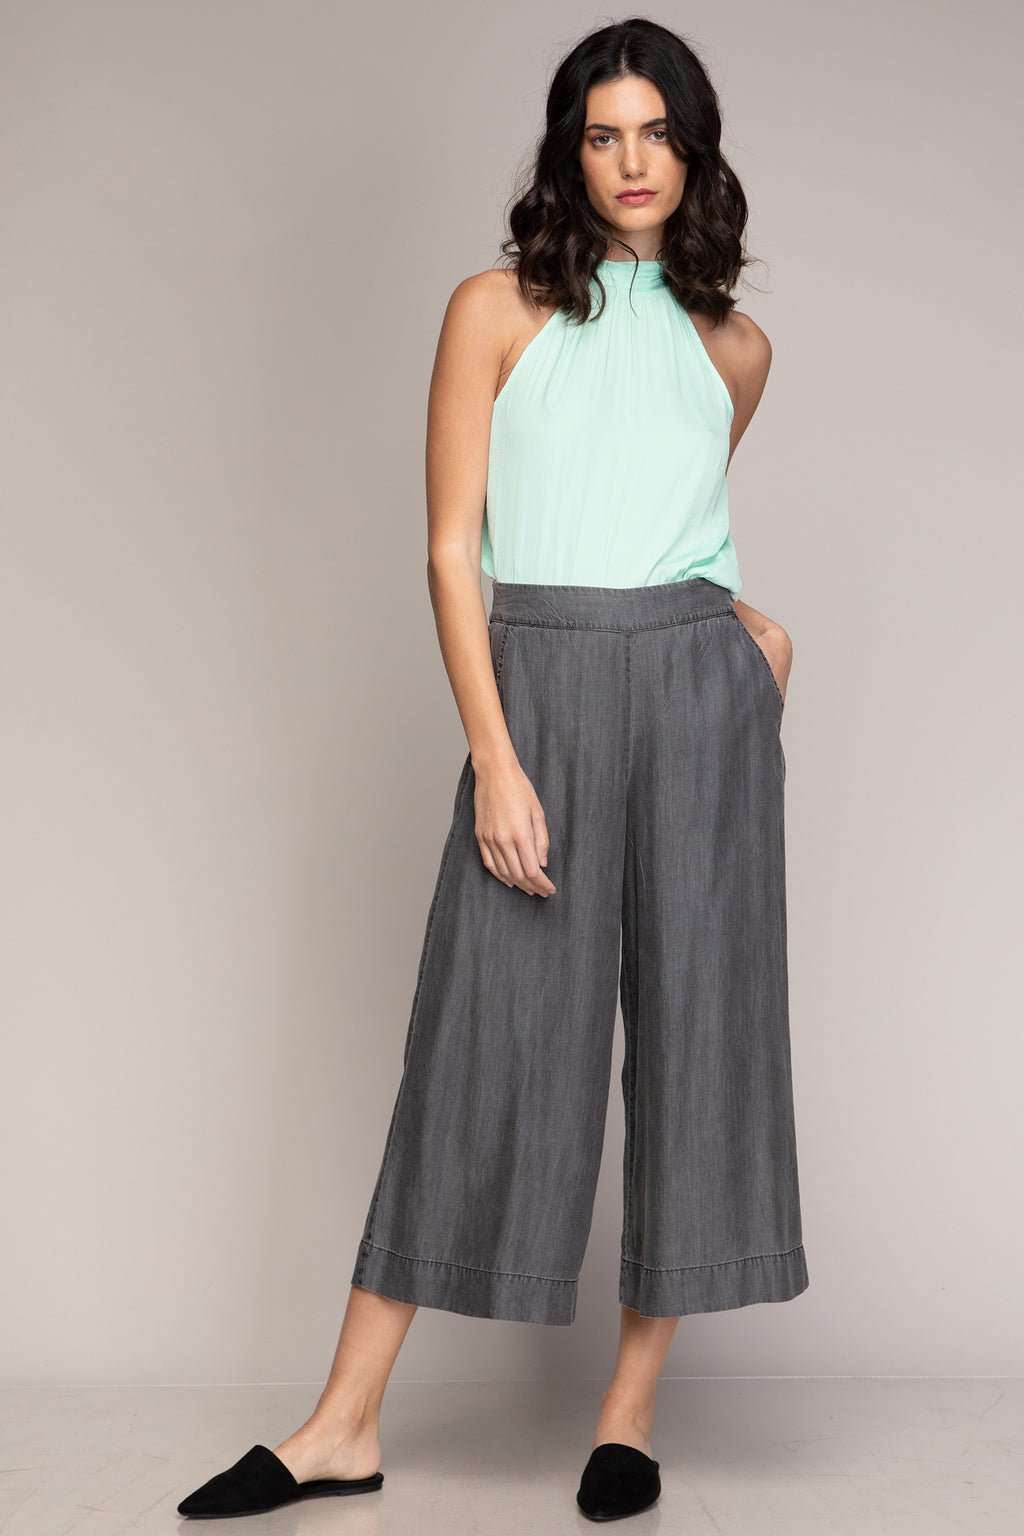 Mint Halterneck Top